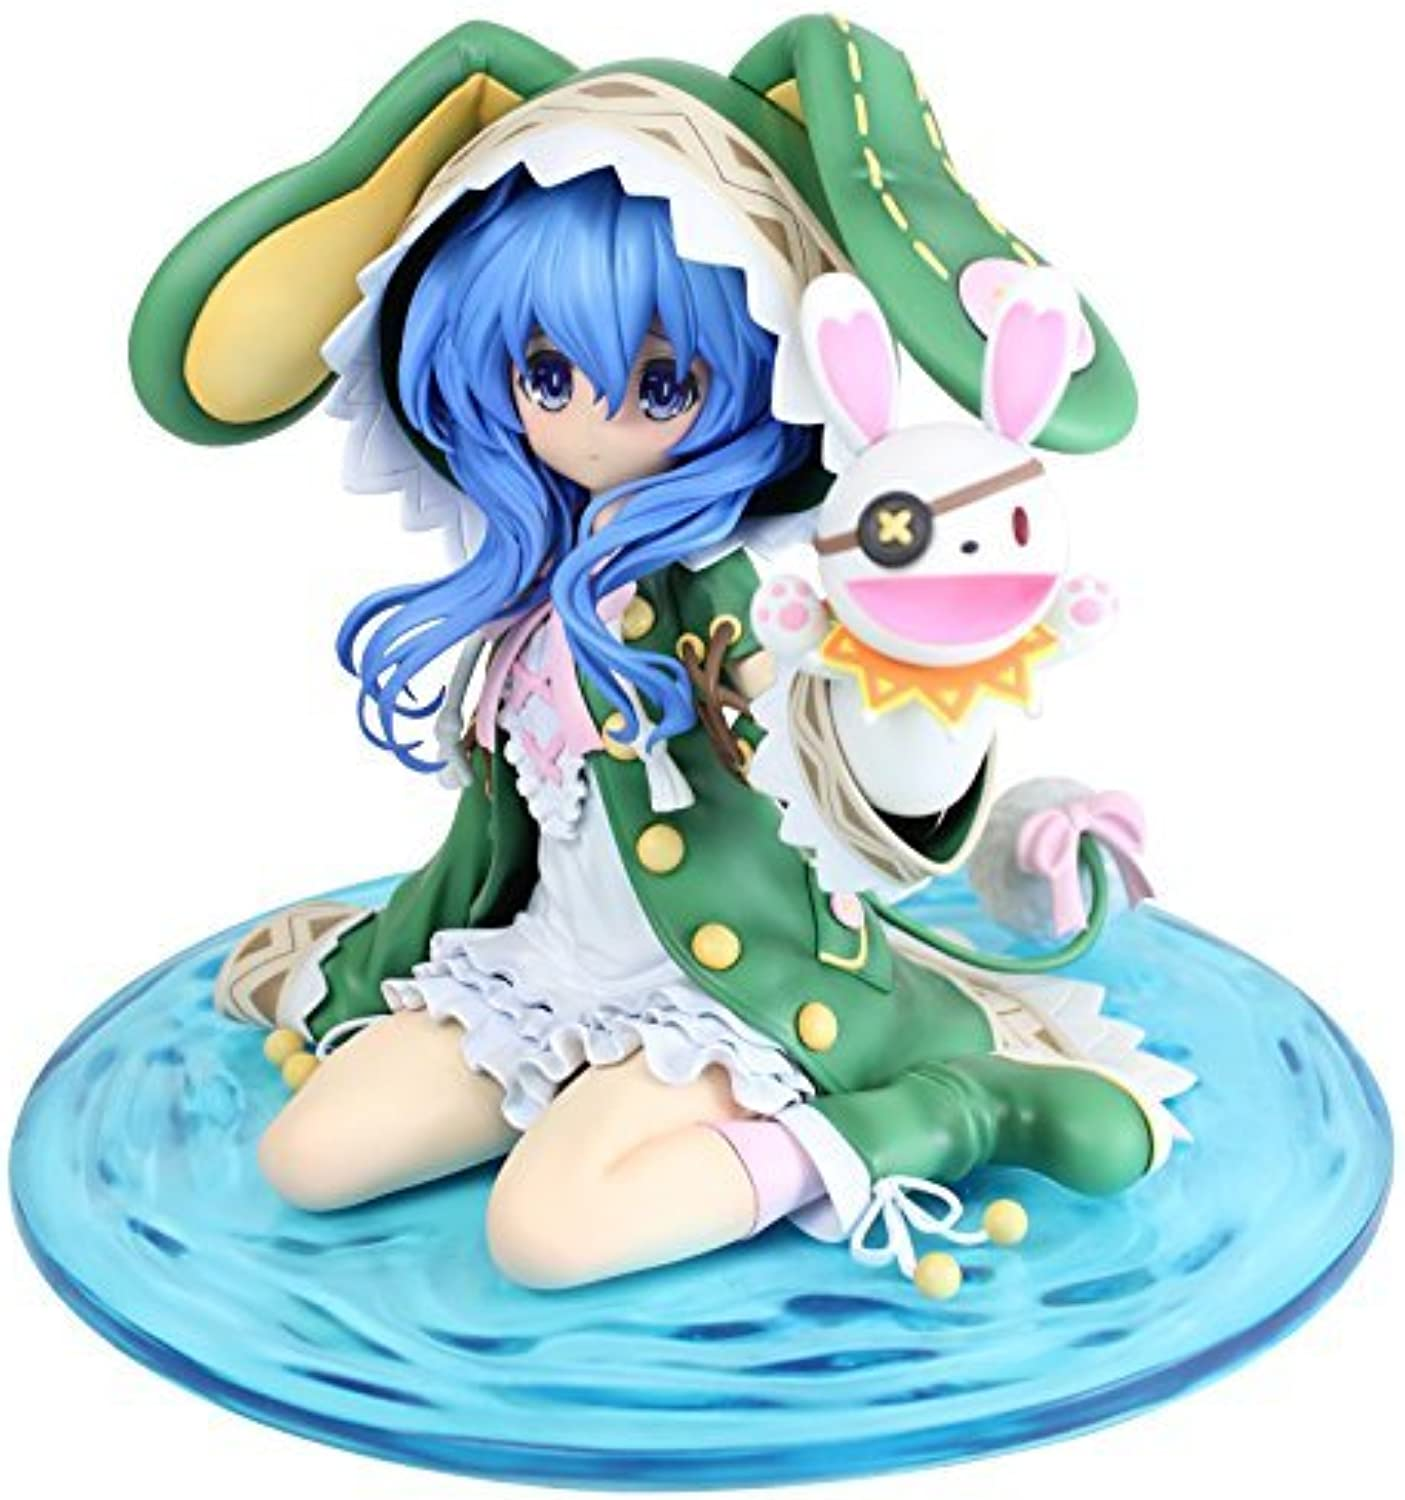 Good Smile Date A Live II  Yoshino (Don't Hurt Me Version) PVC Statue by Good Smile